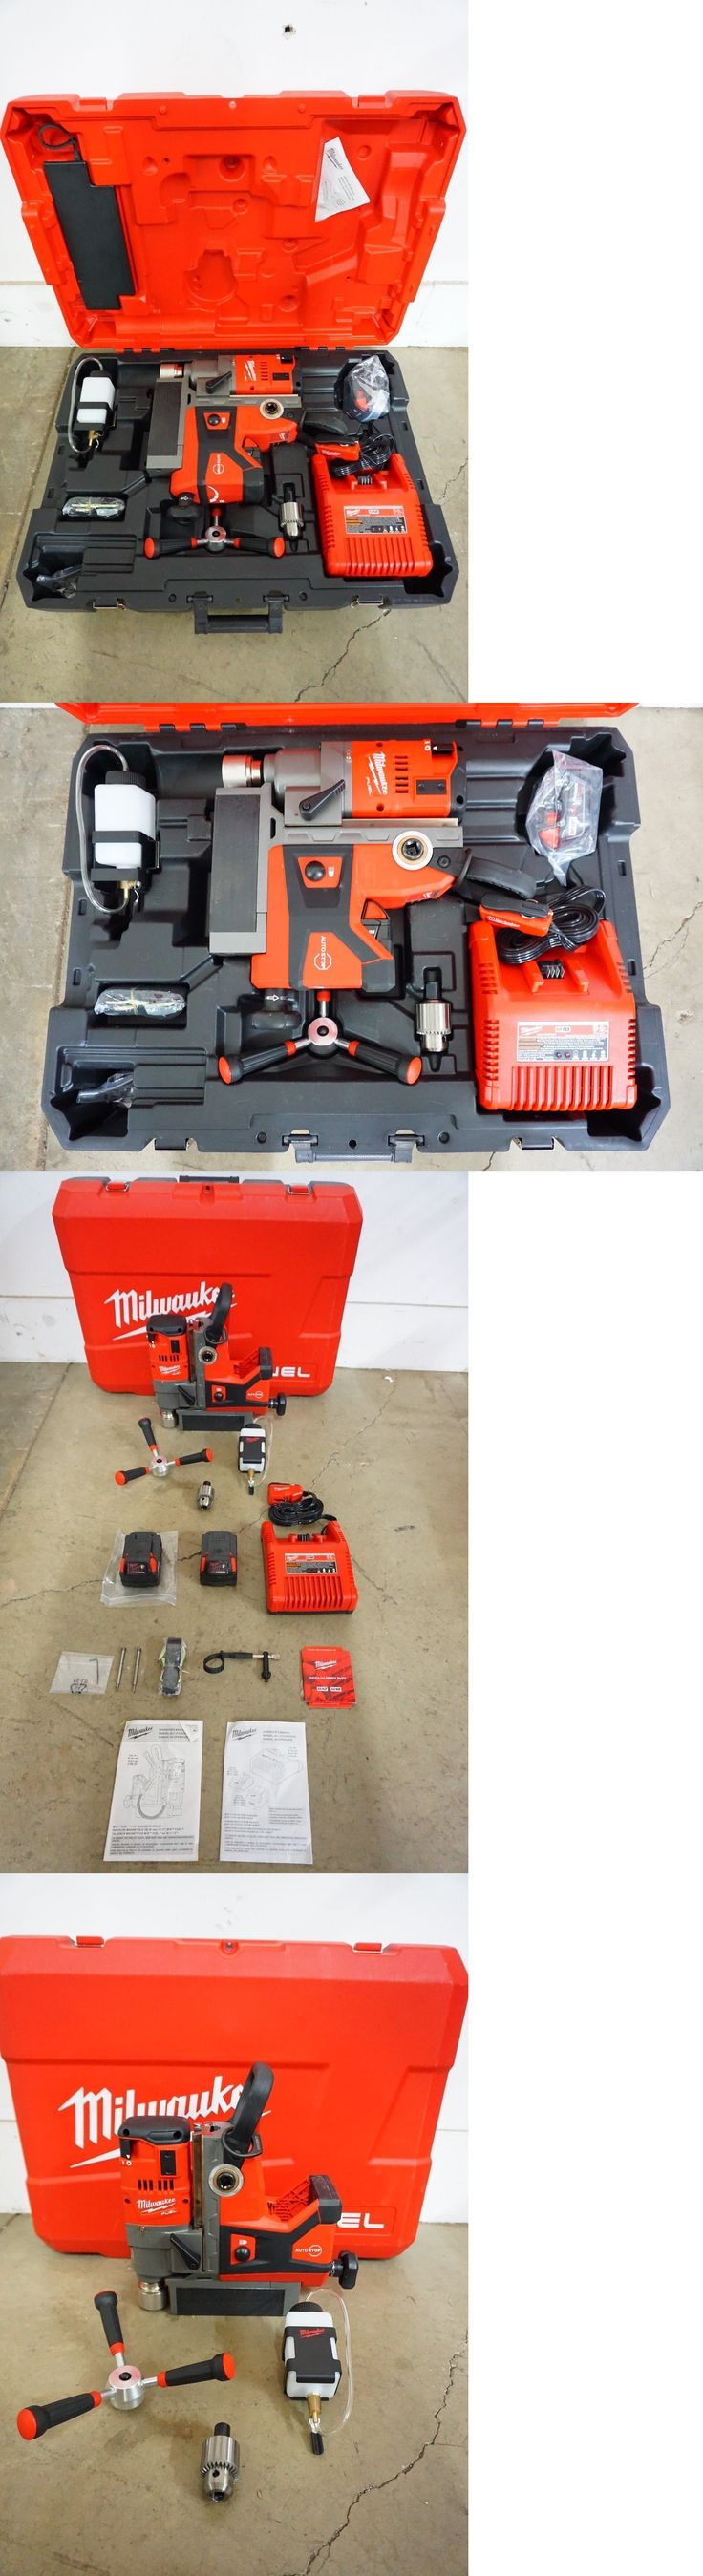 Combination Sets 177000: Milwaukee M18 Fuel 18V 1-1 2 Lineman Magnetic Drill W Batteries 2788-22 New -> BUY IT NOW ONLY: $2099.99 on eBay!